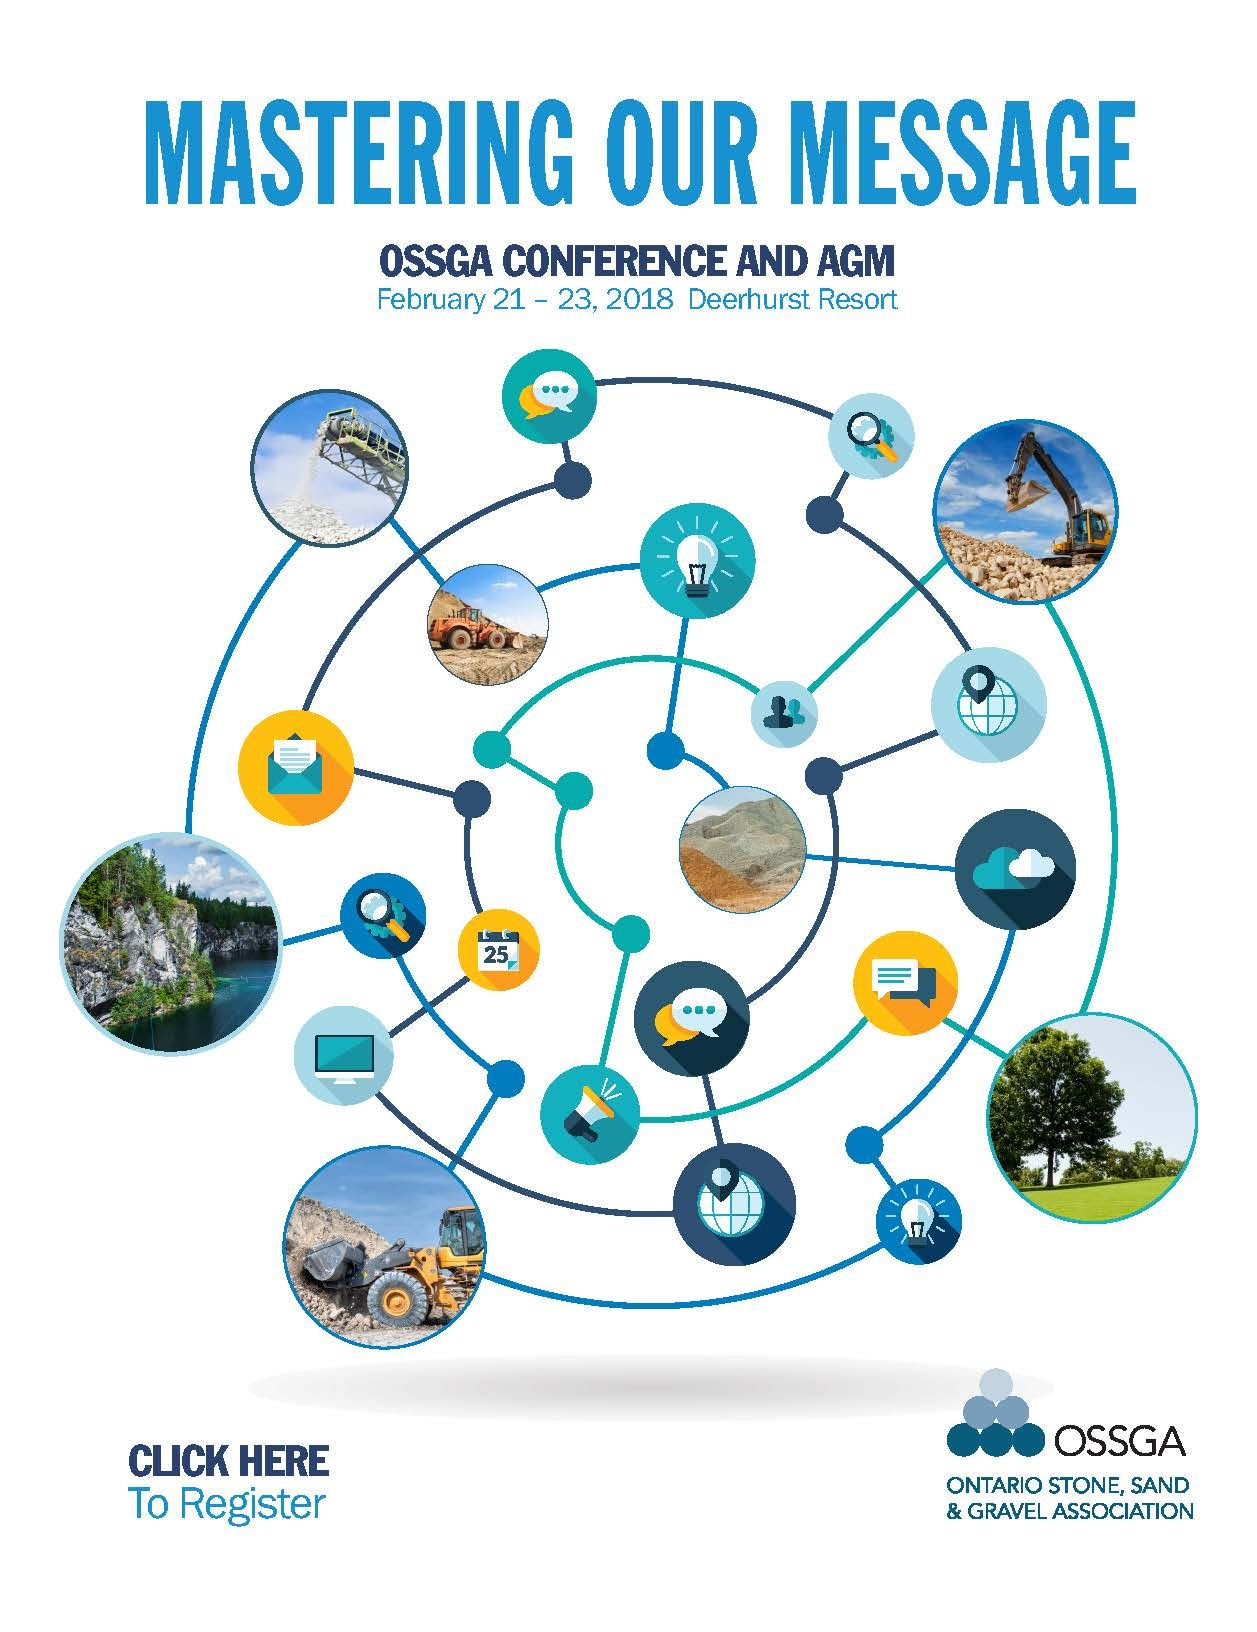 2018 ossga conference and agm at deerhurst resort ontario sand for a full conference agenda pease click here pooptronica Images